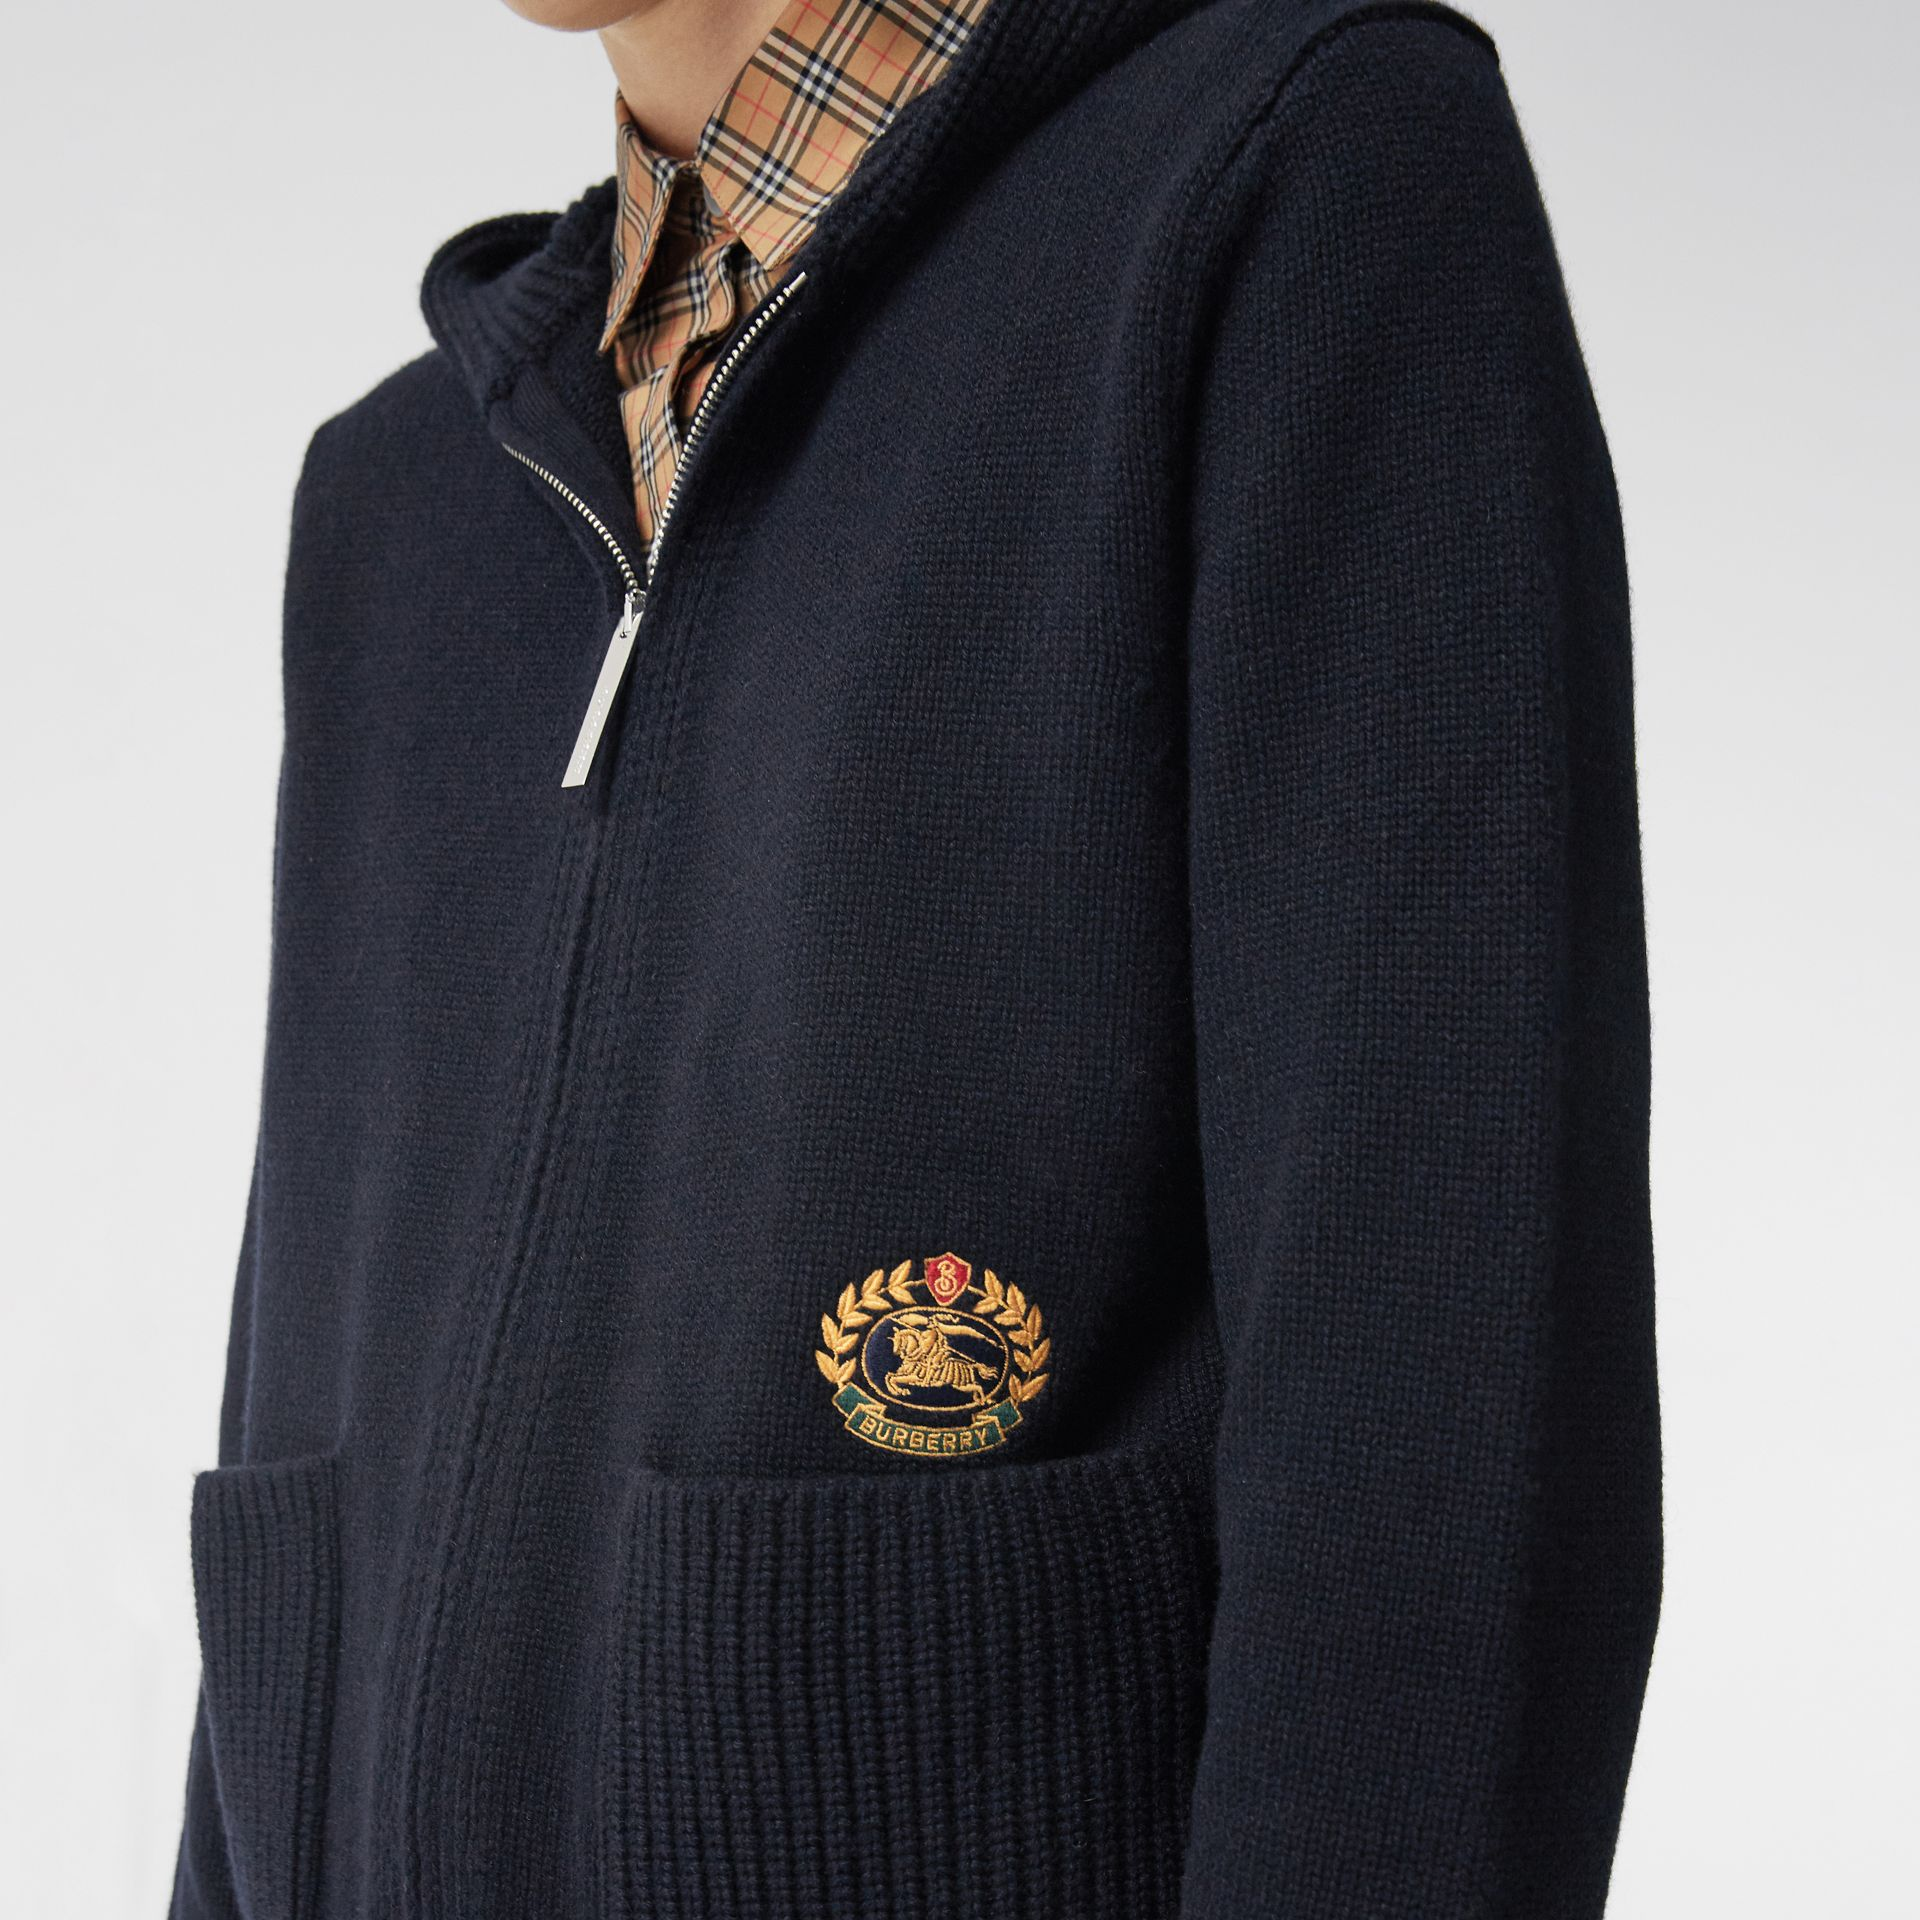 Embroidered Crest Cashmere Hooded Top in Navy - Women | Burberry Singapore - gallery image 1